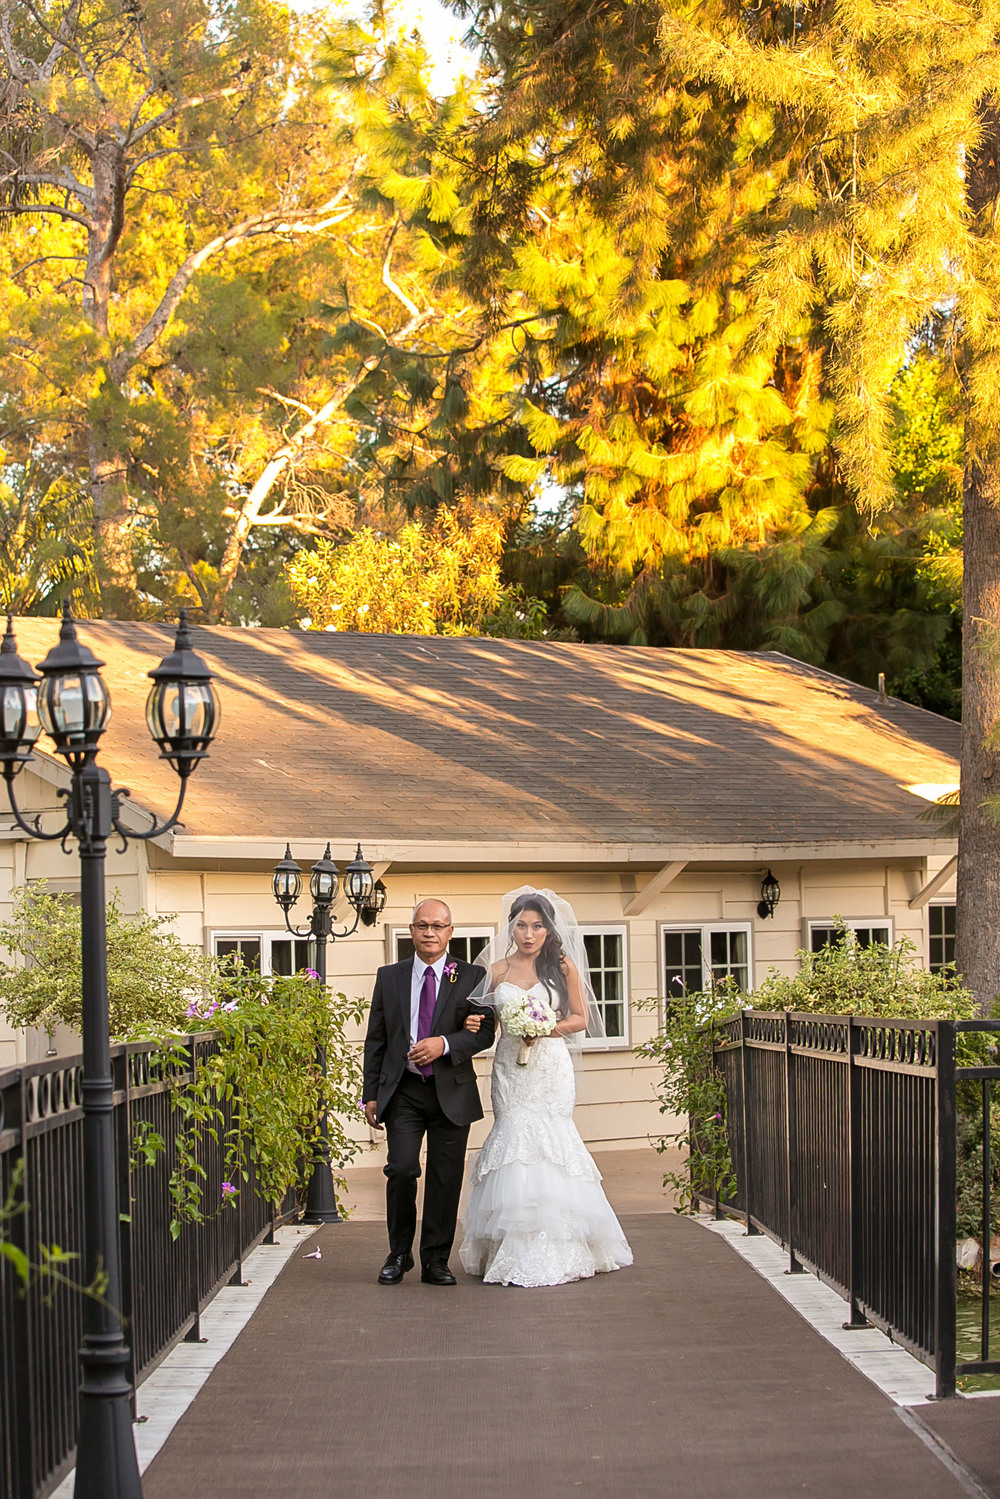 sportsmen's lodge, studio city, sherman oaks, wedding venue, bride, groom, love bridal portraits, los angeles wedding photography, chris holt photography